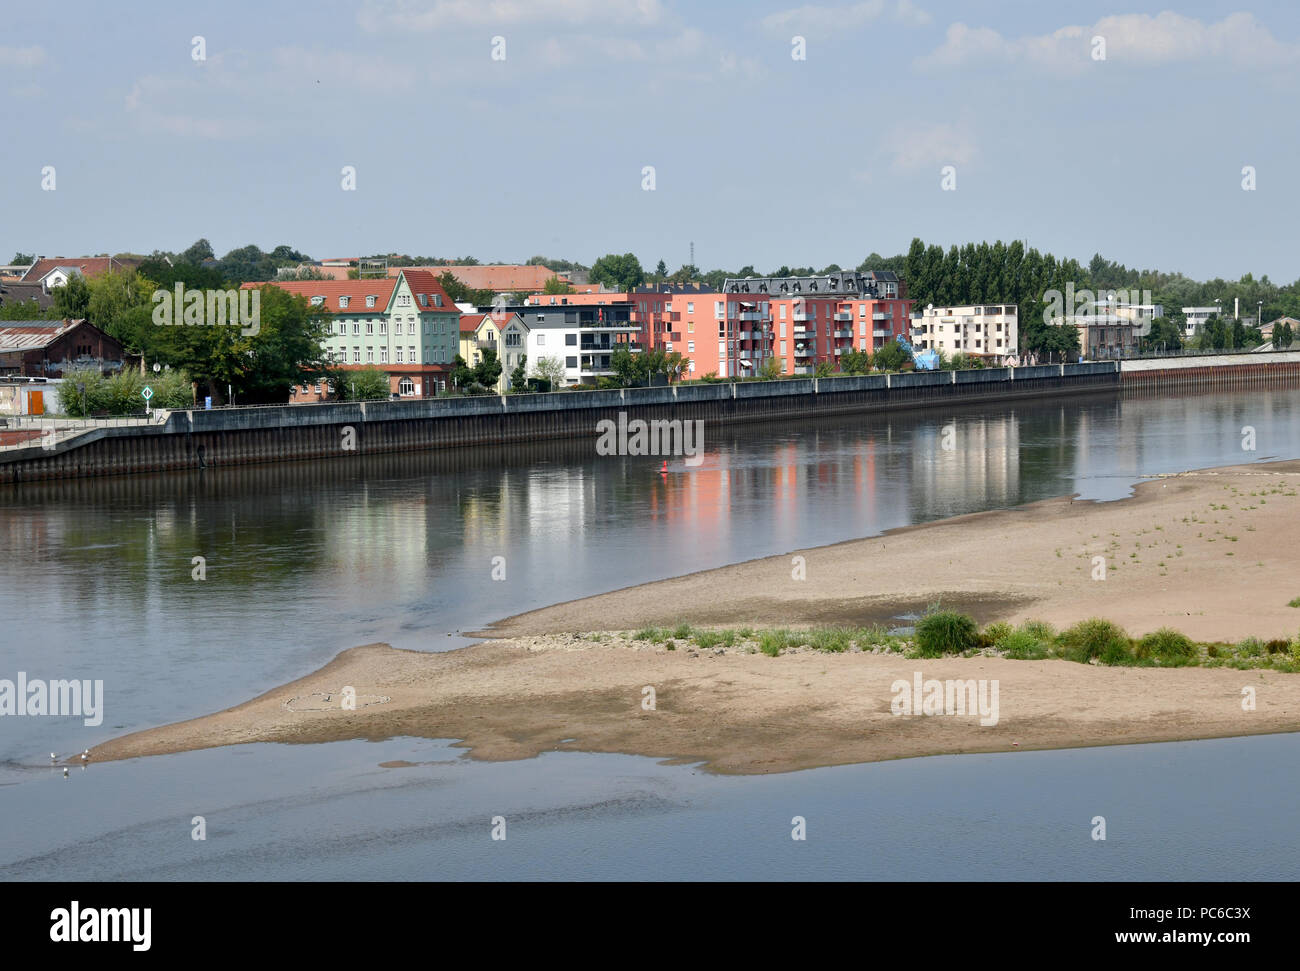 01 August 2018, Germany, Frankfurt (Oder): The buildings of the city are reflected in the low water of the Oder. Photo: Bernd Settnik/dpa-Zentralbild/dpa - Stock Image